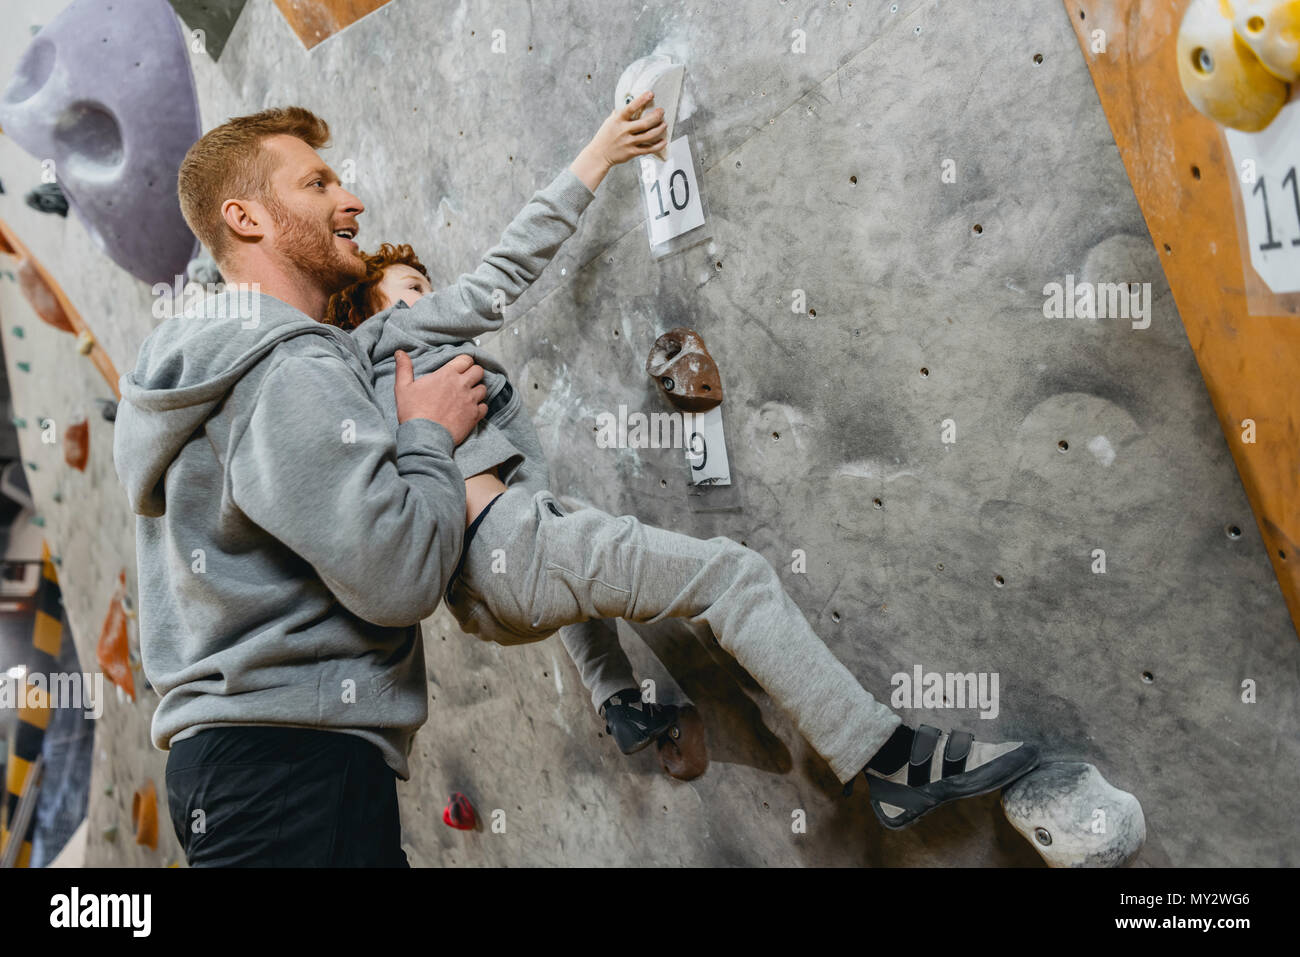 Young dad teaching his little son how to climb a wall with grips at gym - Stock Image